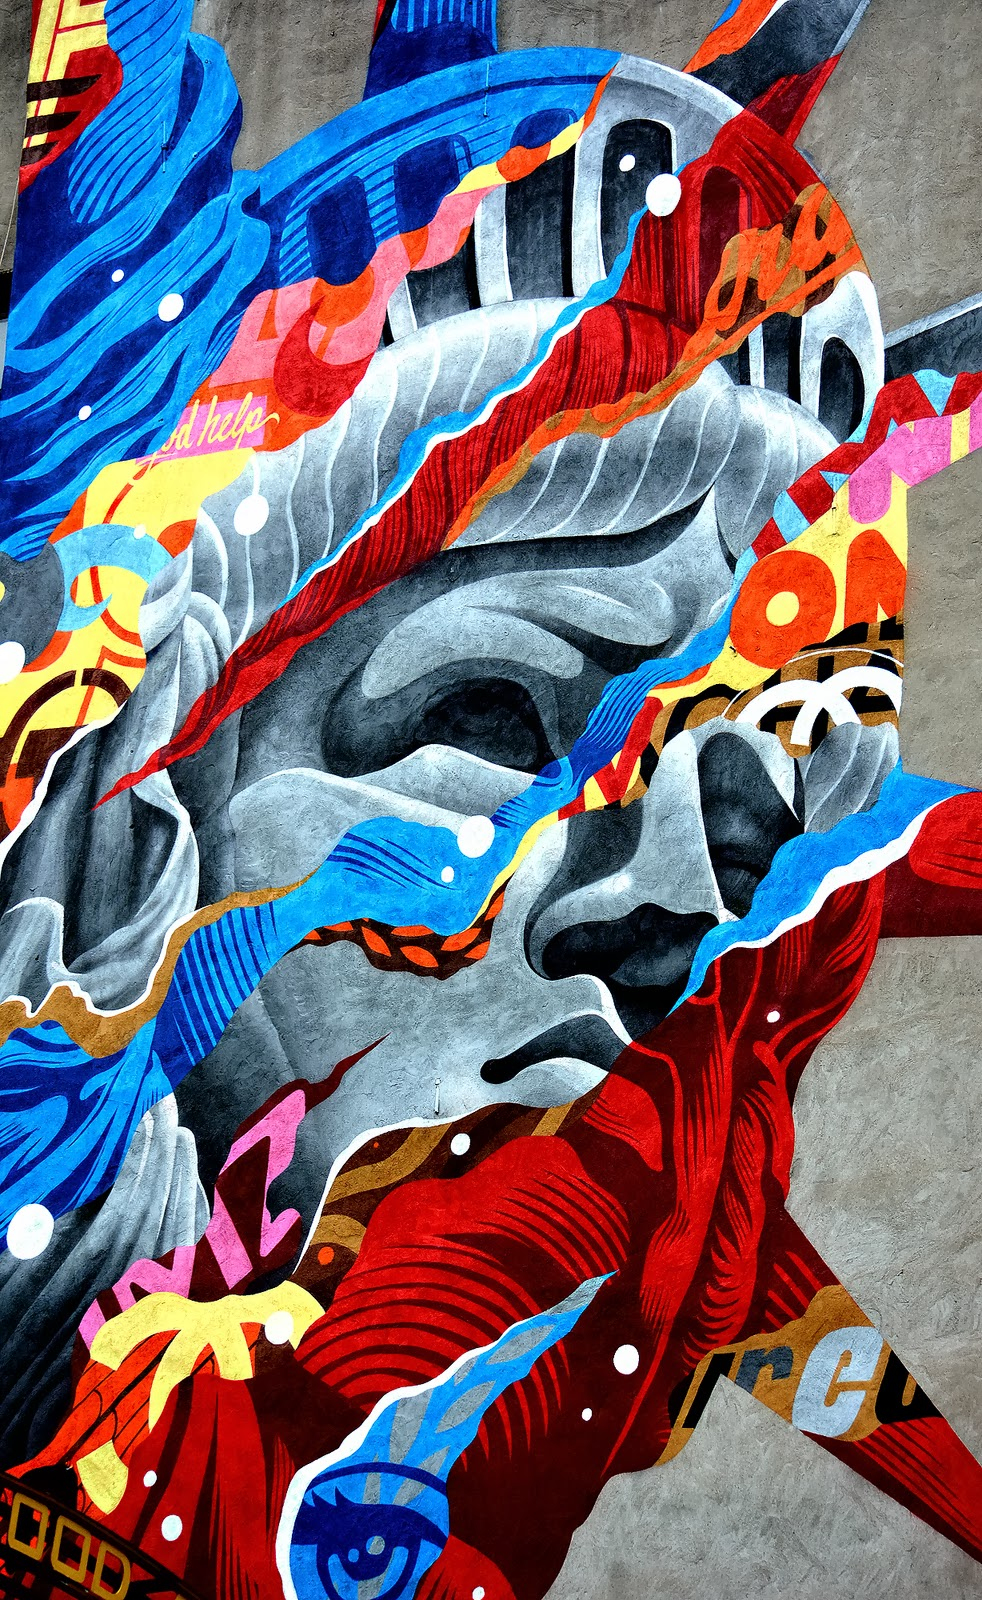 Tristan Eaton New Street Art For The Lisa Project